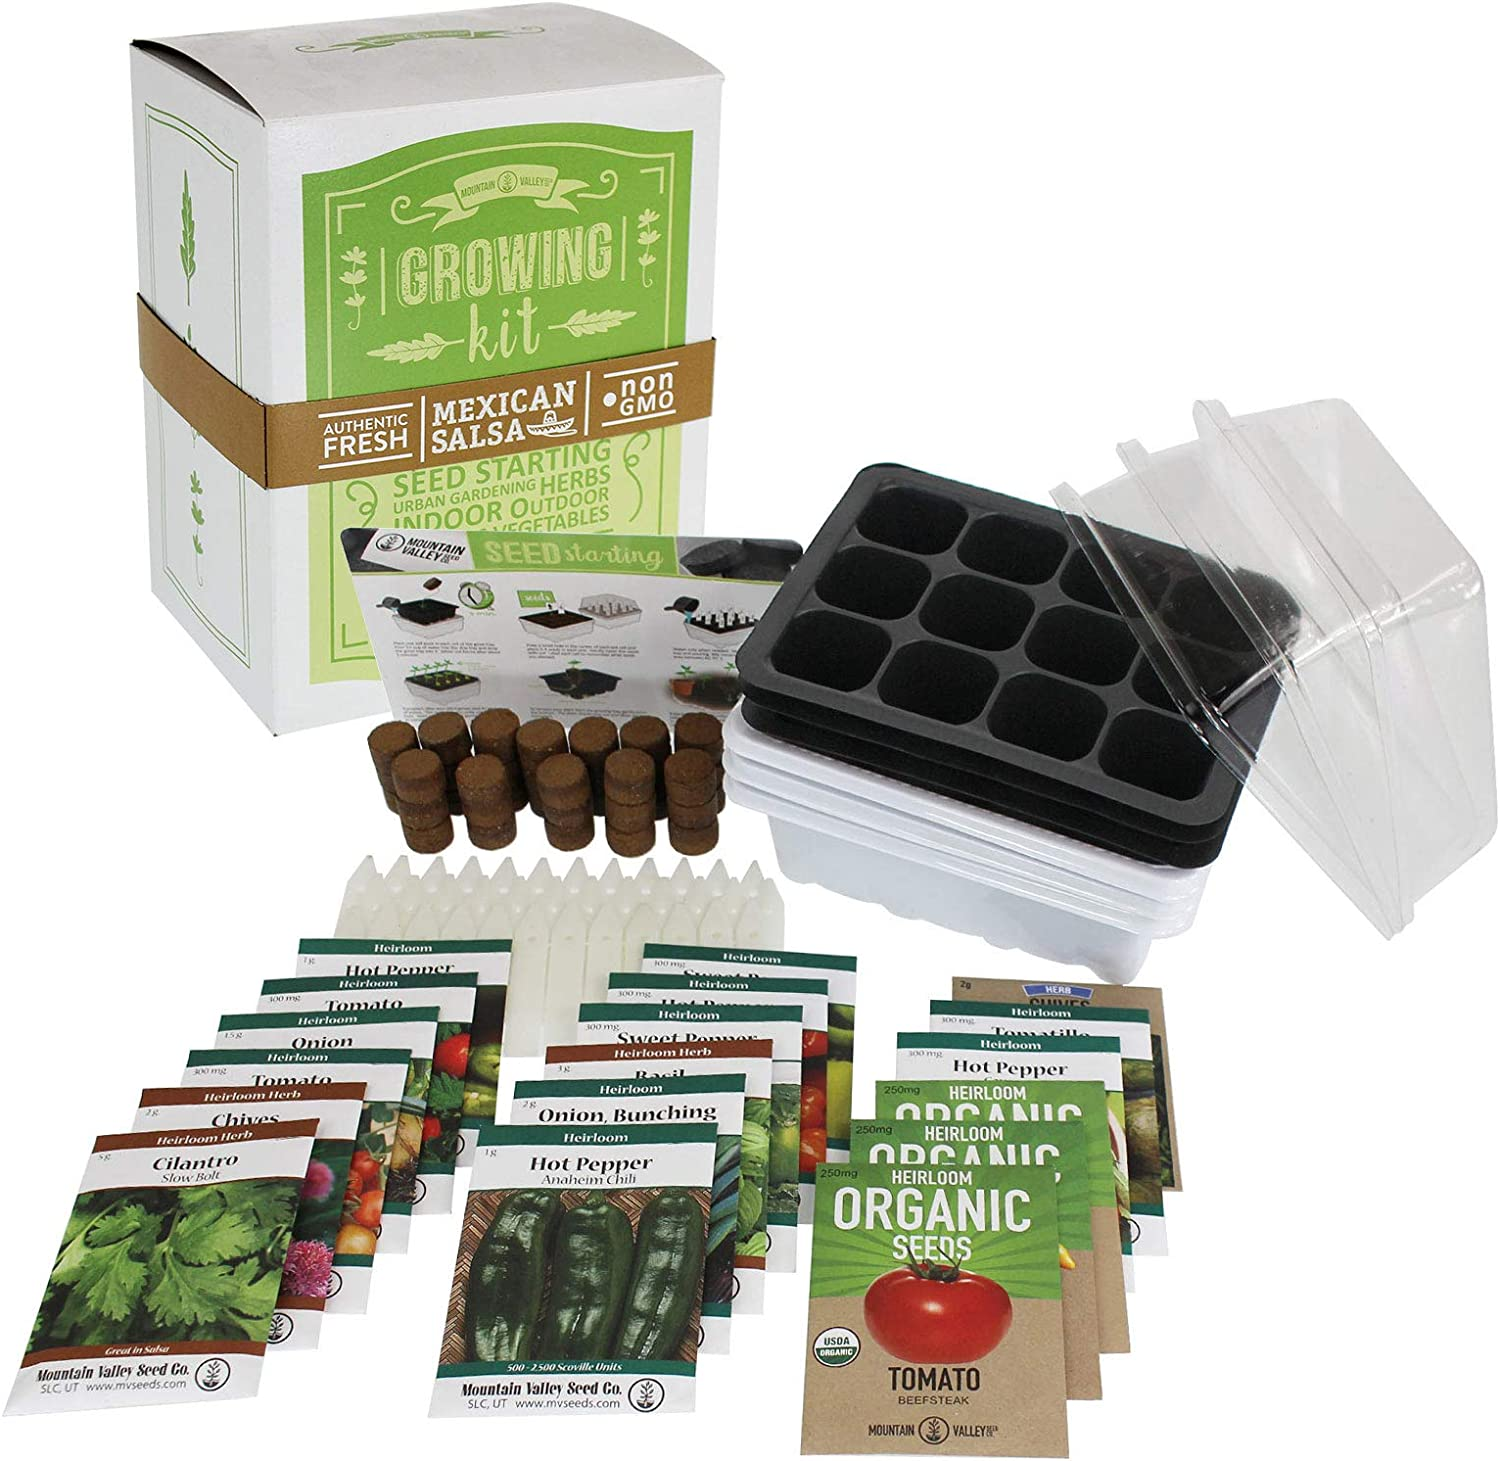 Salad & Vegetable Garden Seed Starter Kit | Premium Kit | 18 Non-GMO Varieties | Gardening Starter Kit | Seeds: Onion, Swiss Chard, Broccoli, Snap Pea, Spinach, Lettuce, Tomato & More